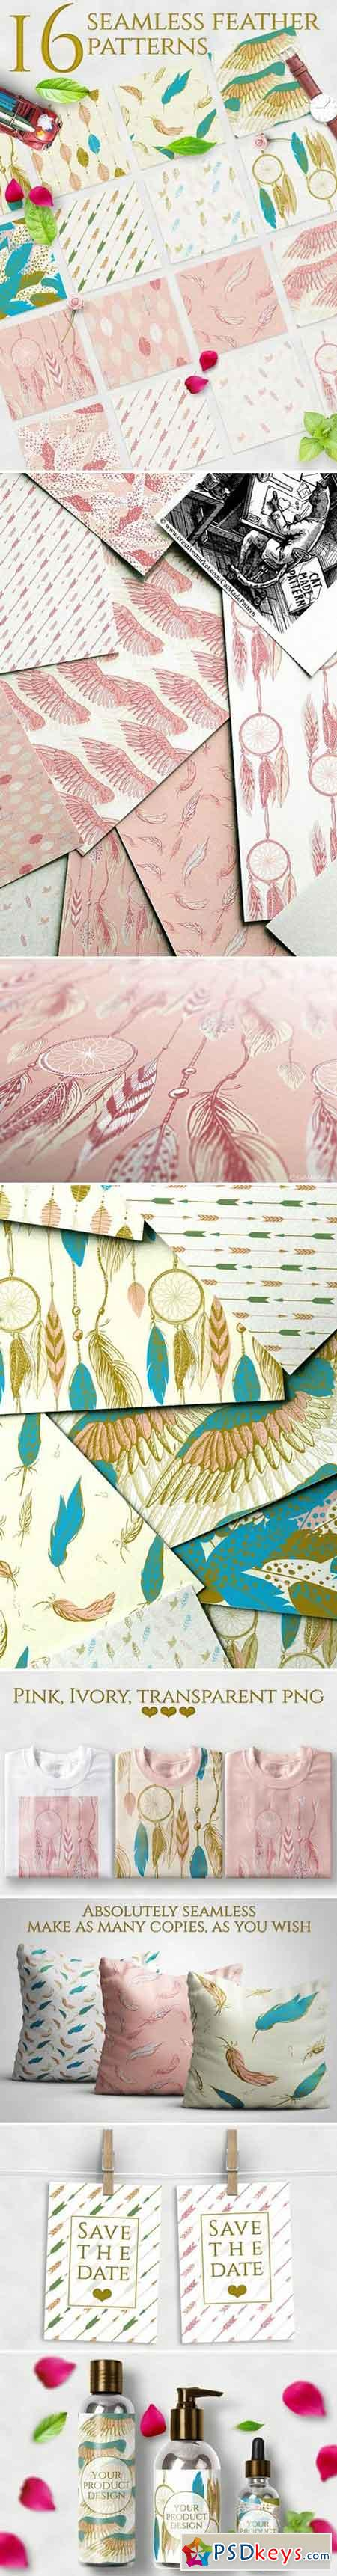 Romantic feather patterns 1537116